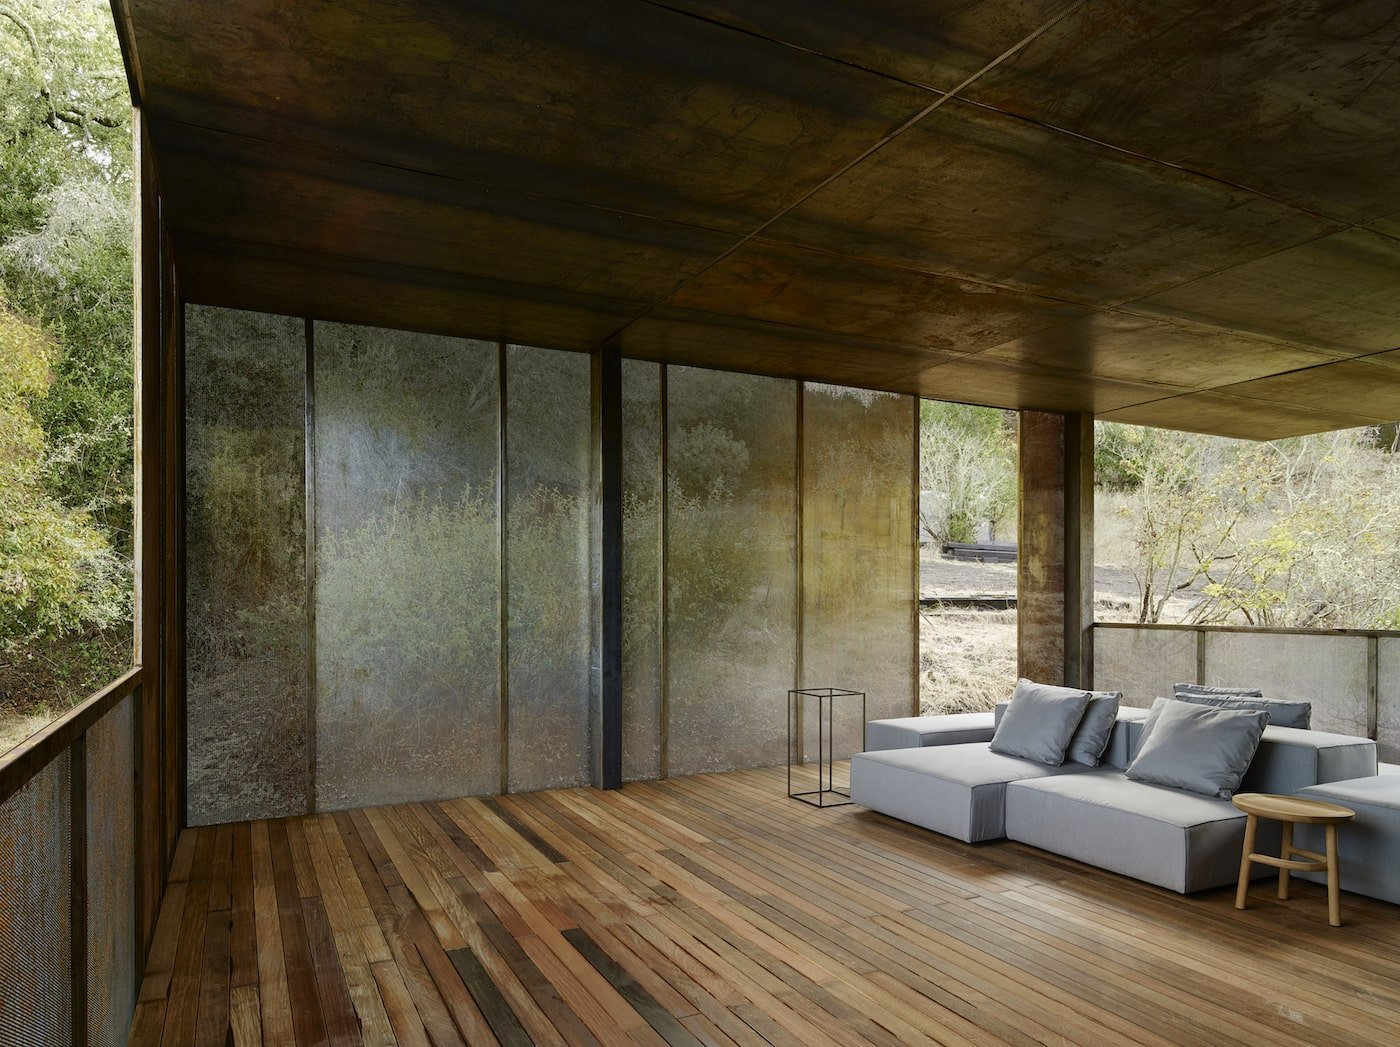 Sitting room with corten steel mesh and timber lined ceiling